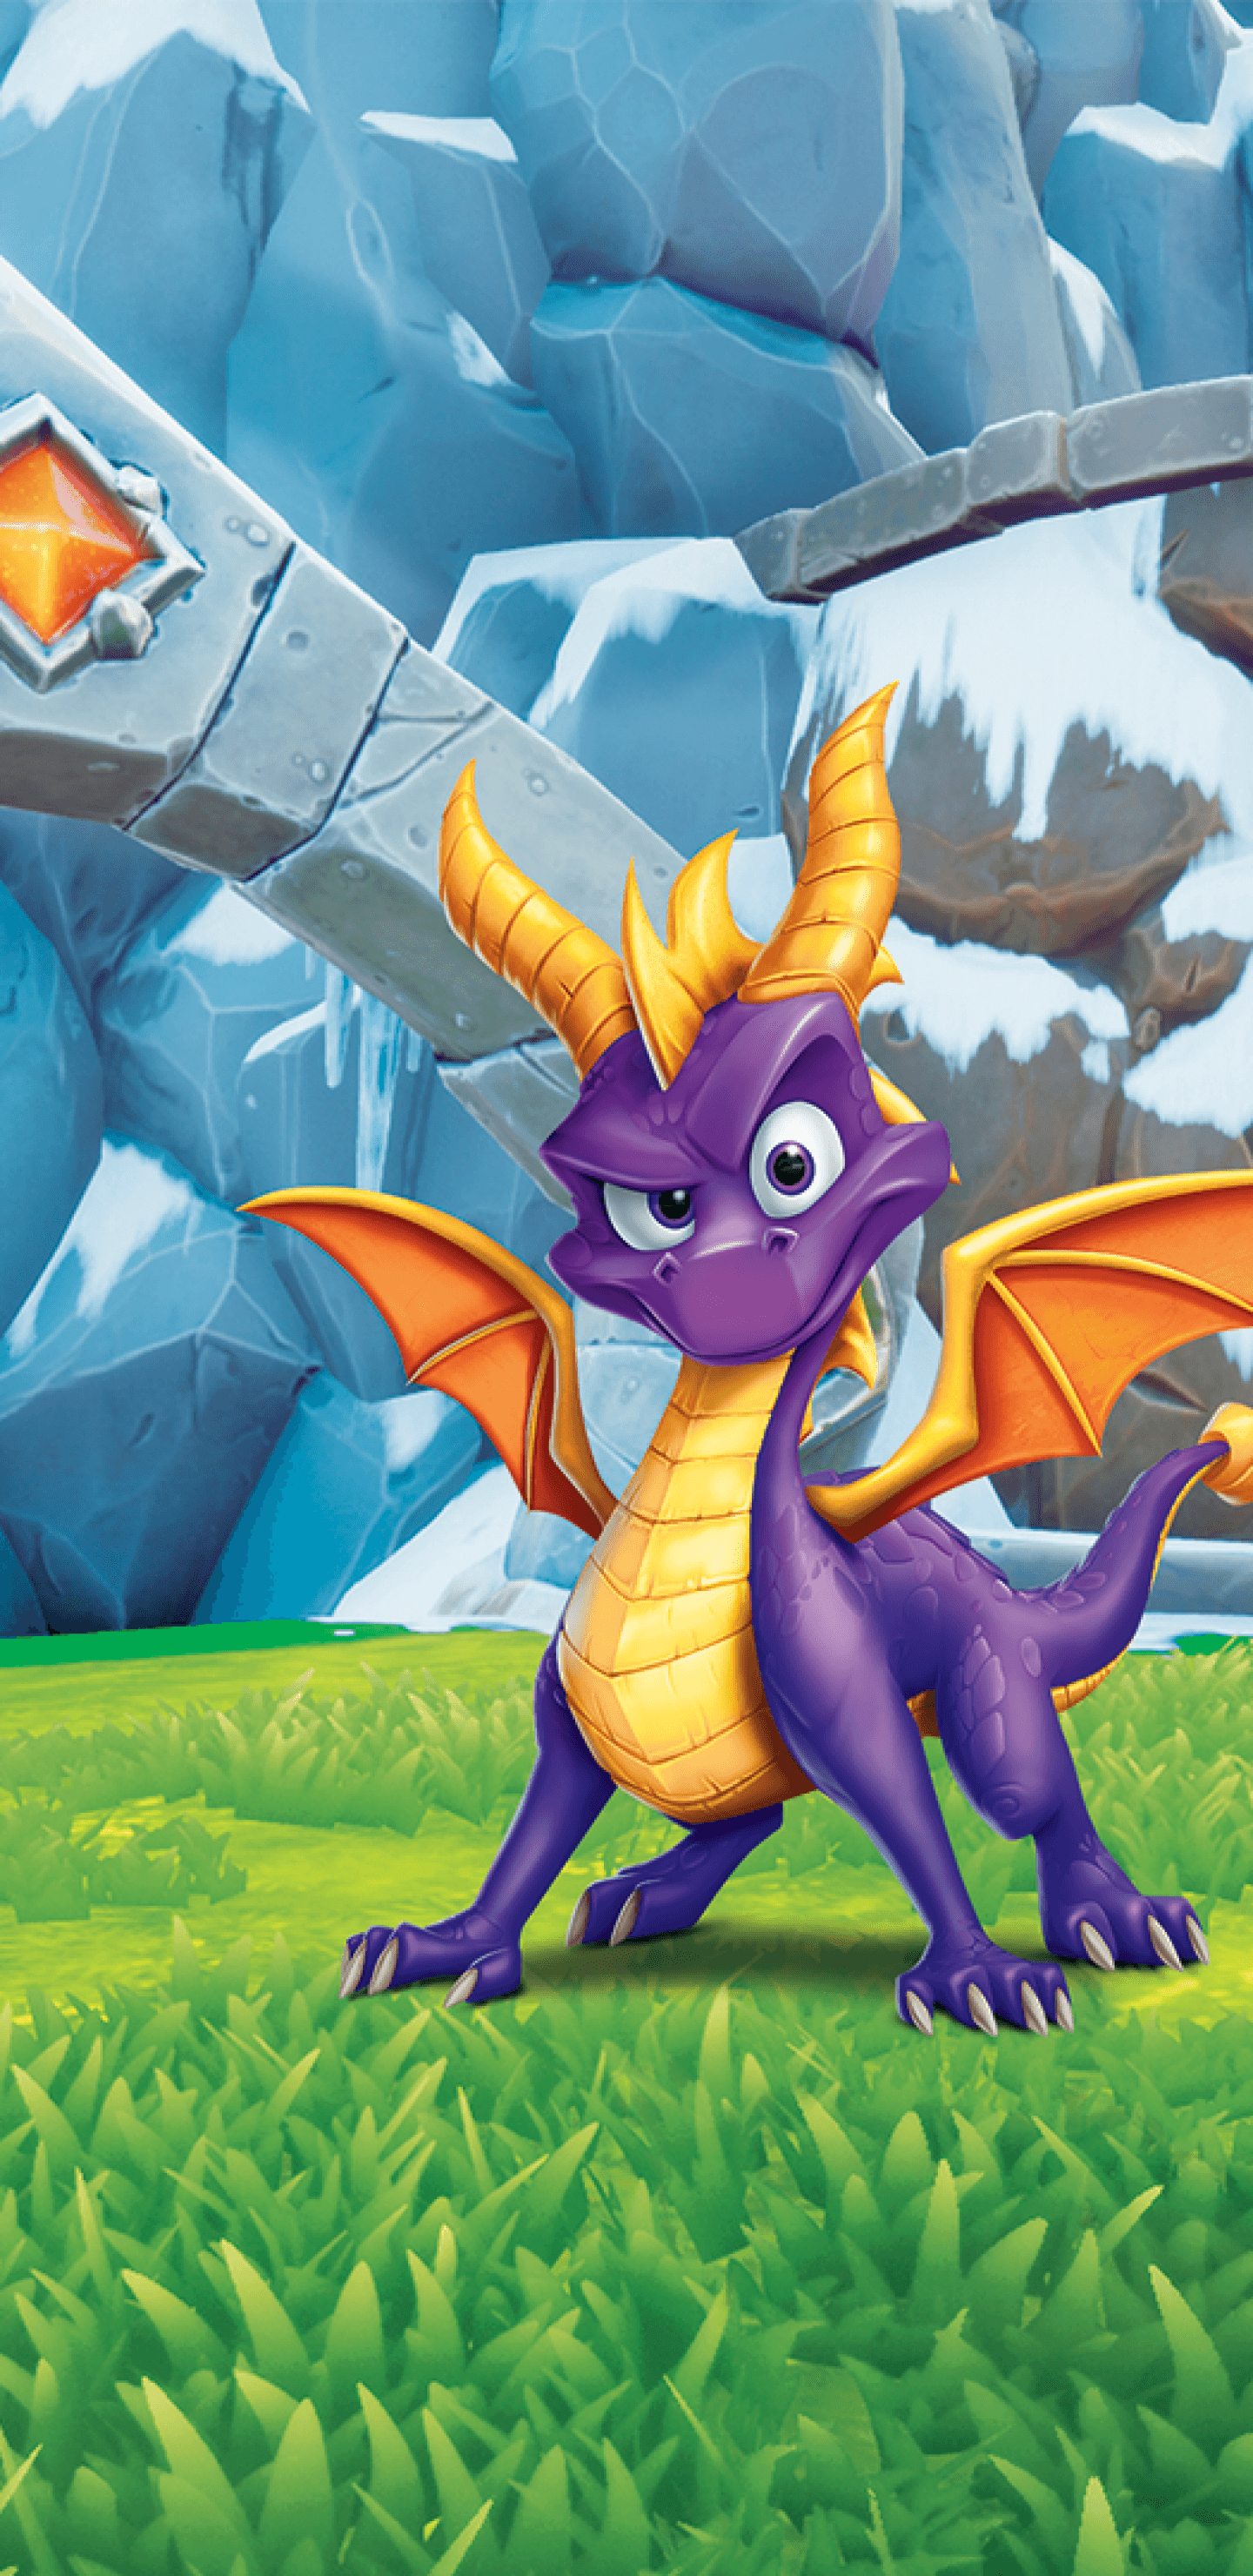 1440x2960 Download 1440x2960 Spyro, The Dragon, Snow, Games Wallpapers for ...